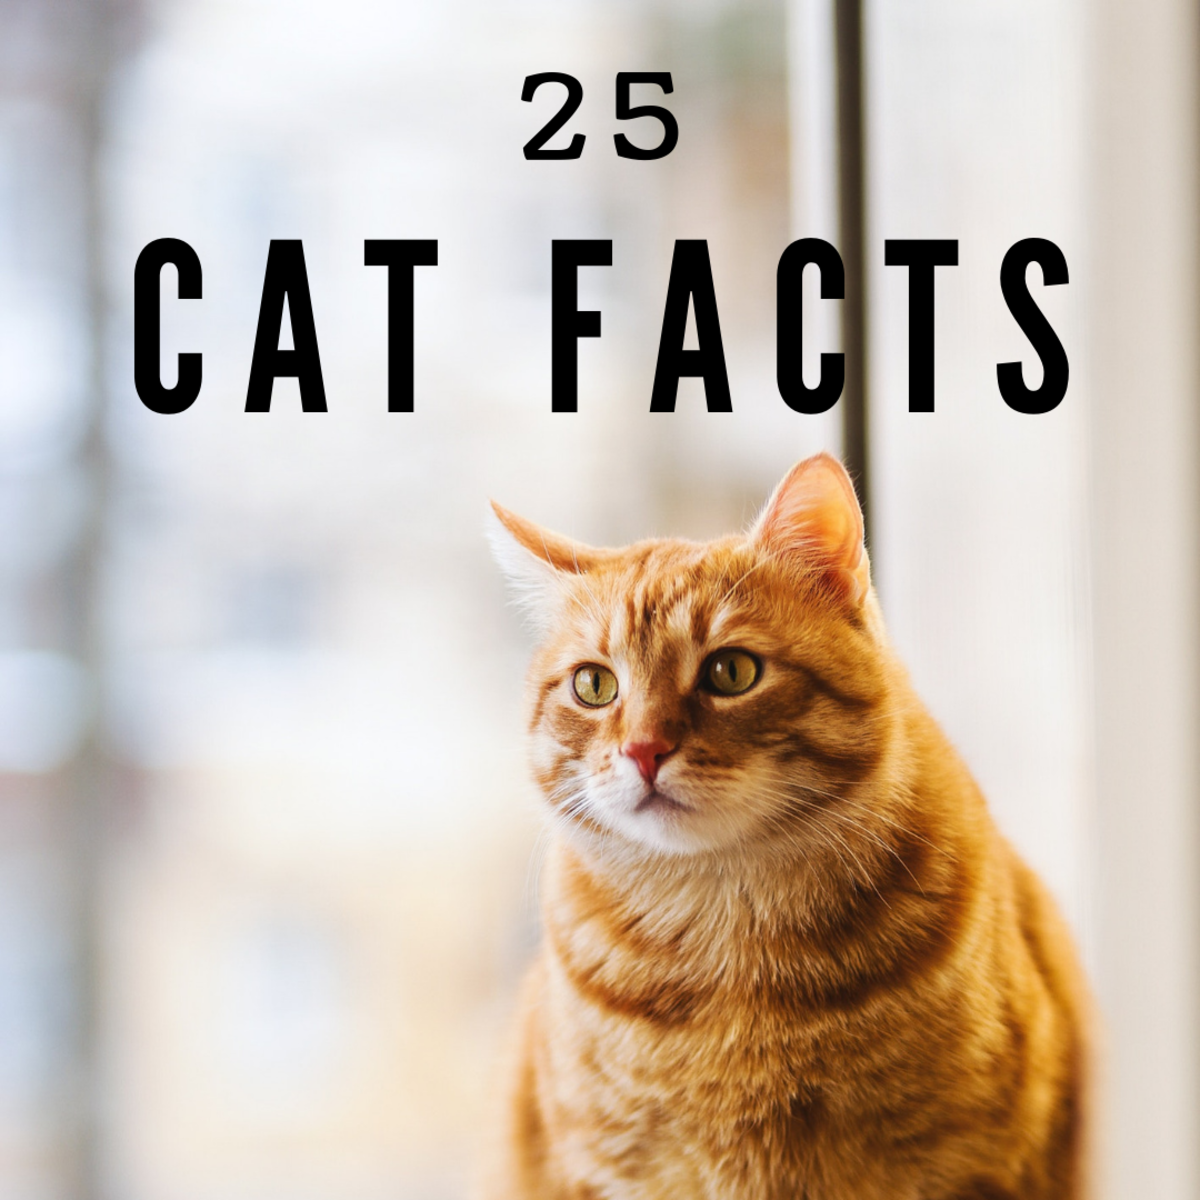 This article includes fun and interesting facts about our furry feline friends!